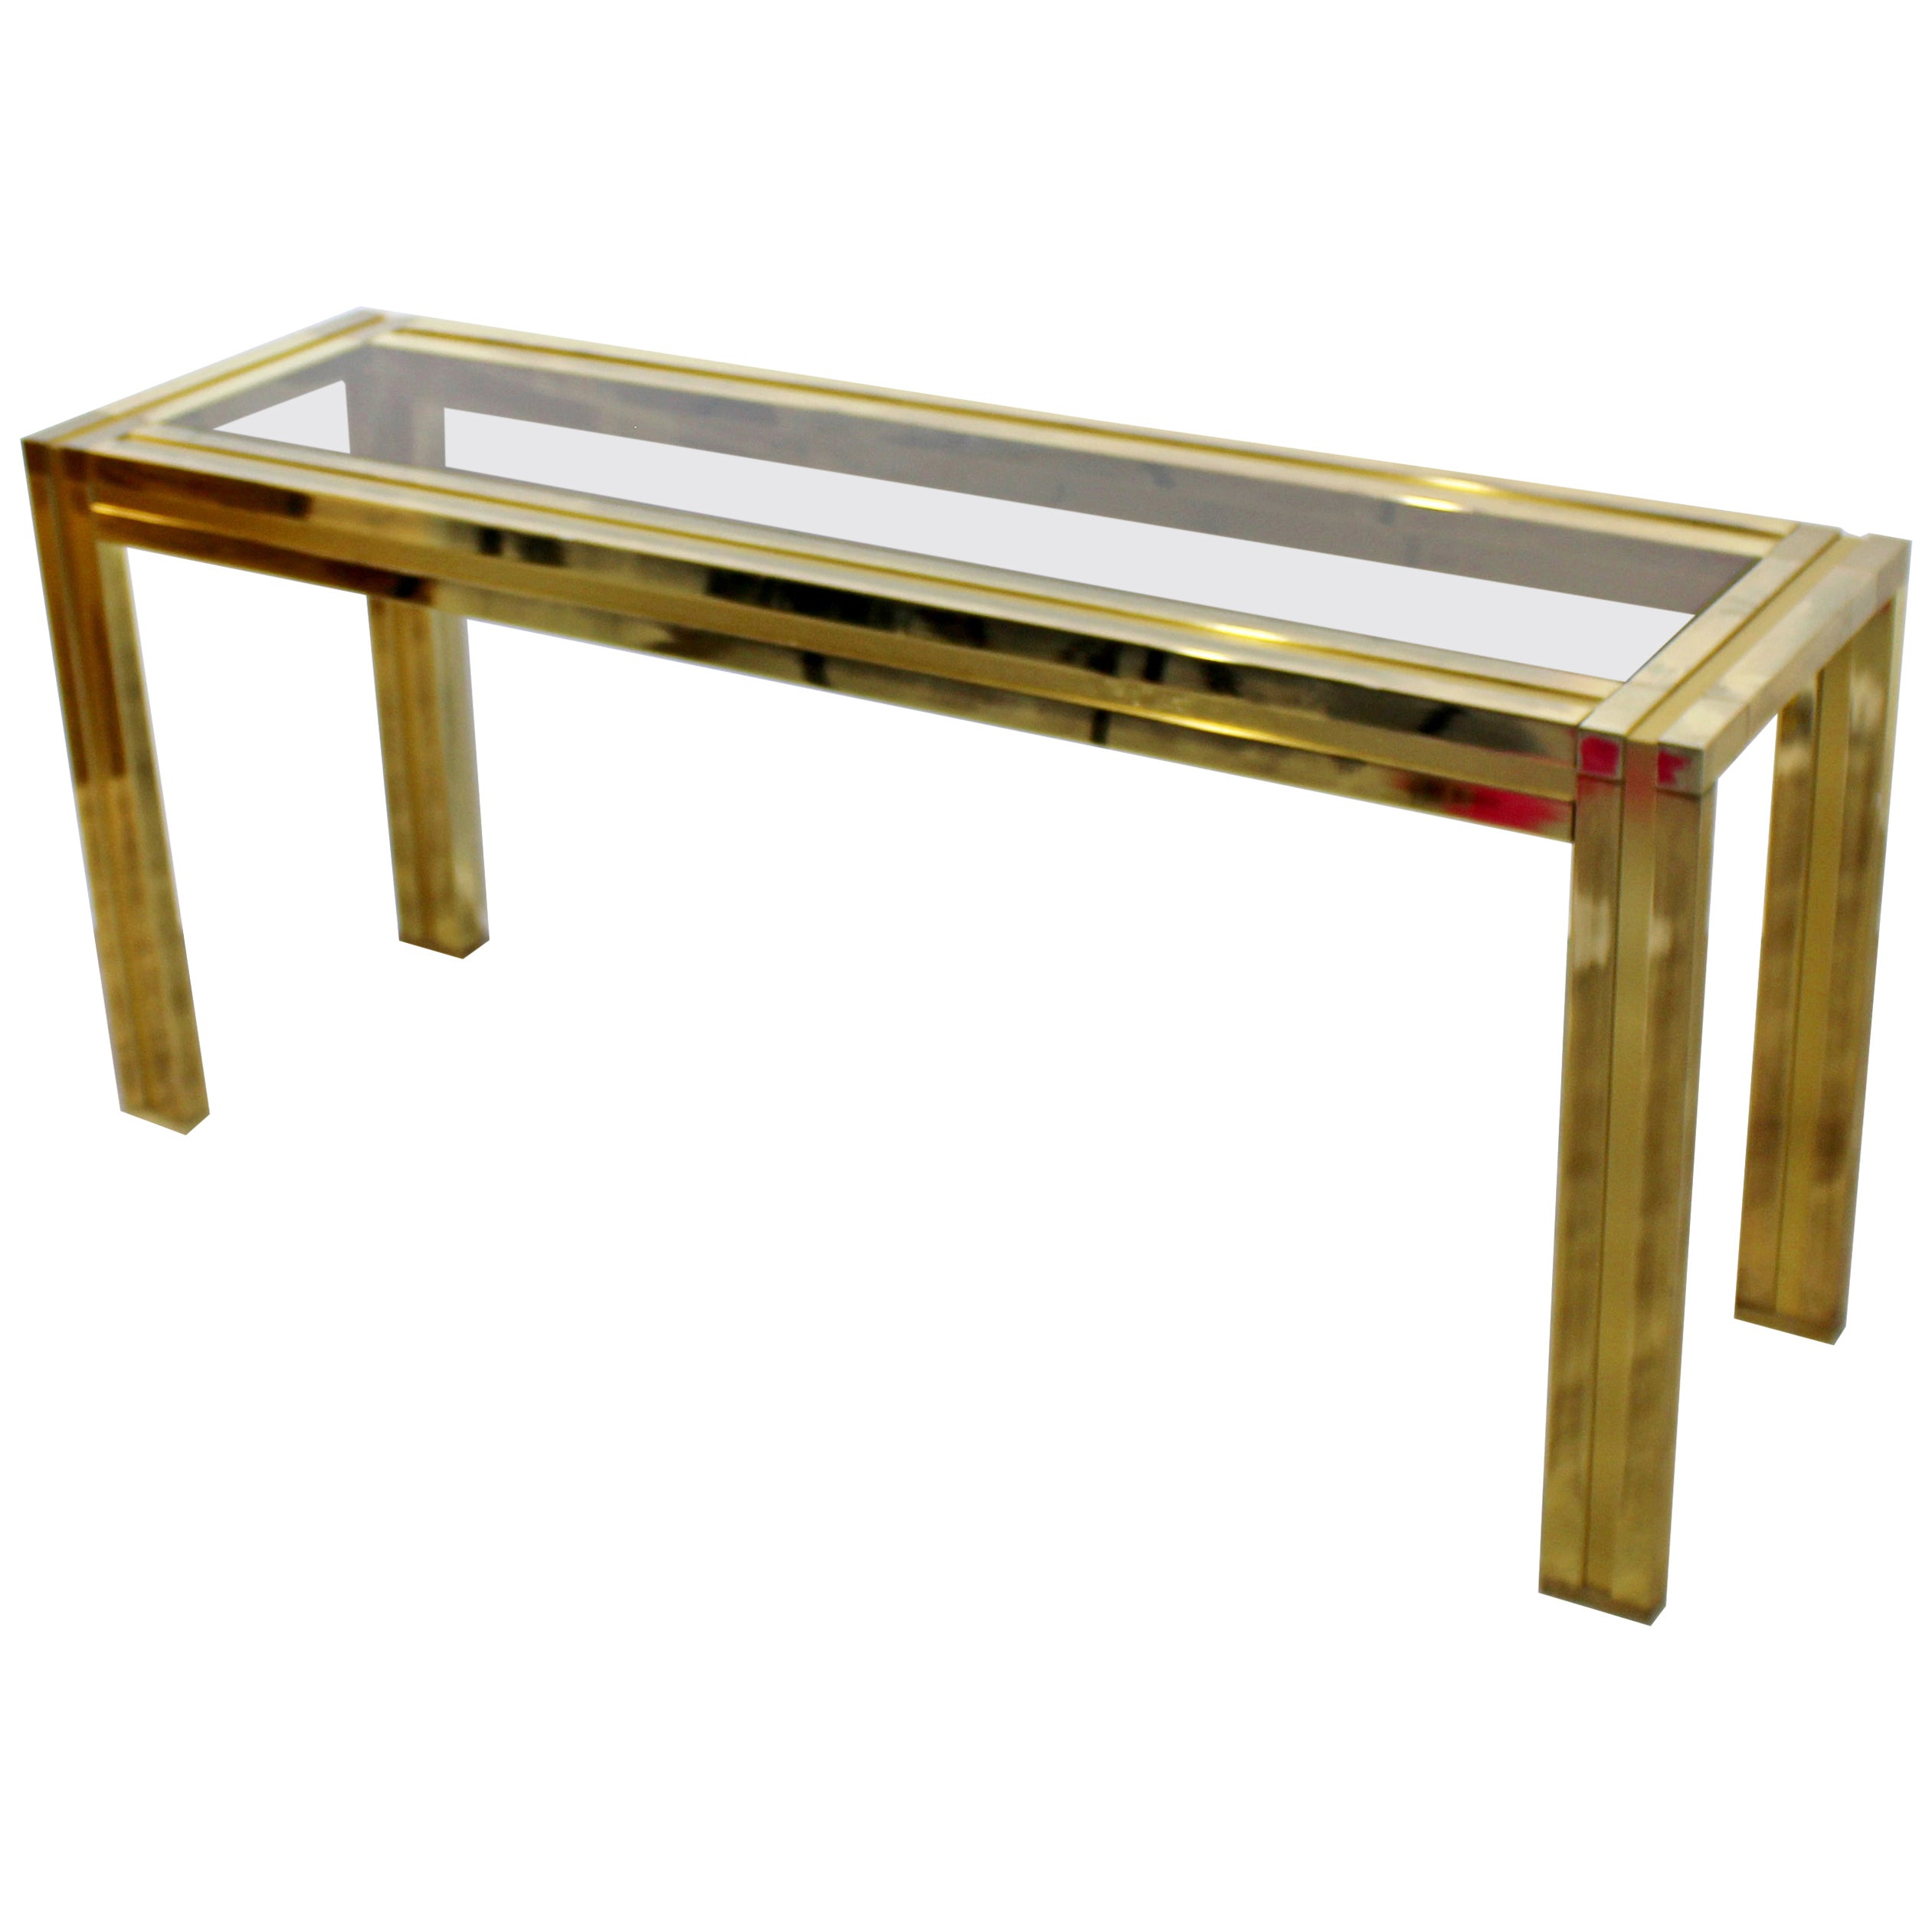 Mid-Century Modern Mastercraft Brass and Smoked Glass Console Table, 1960s